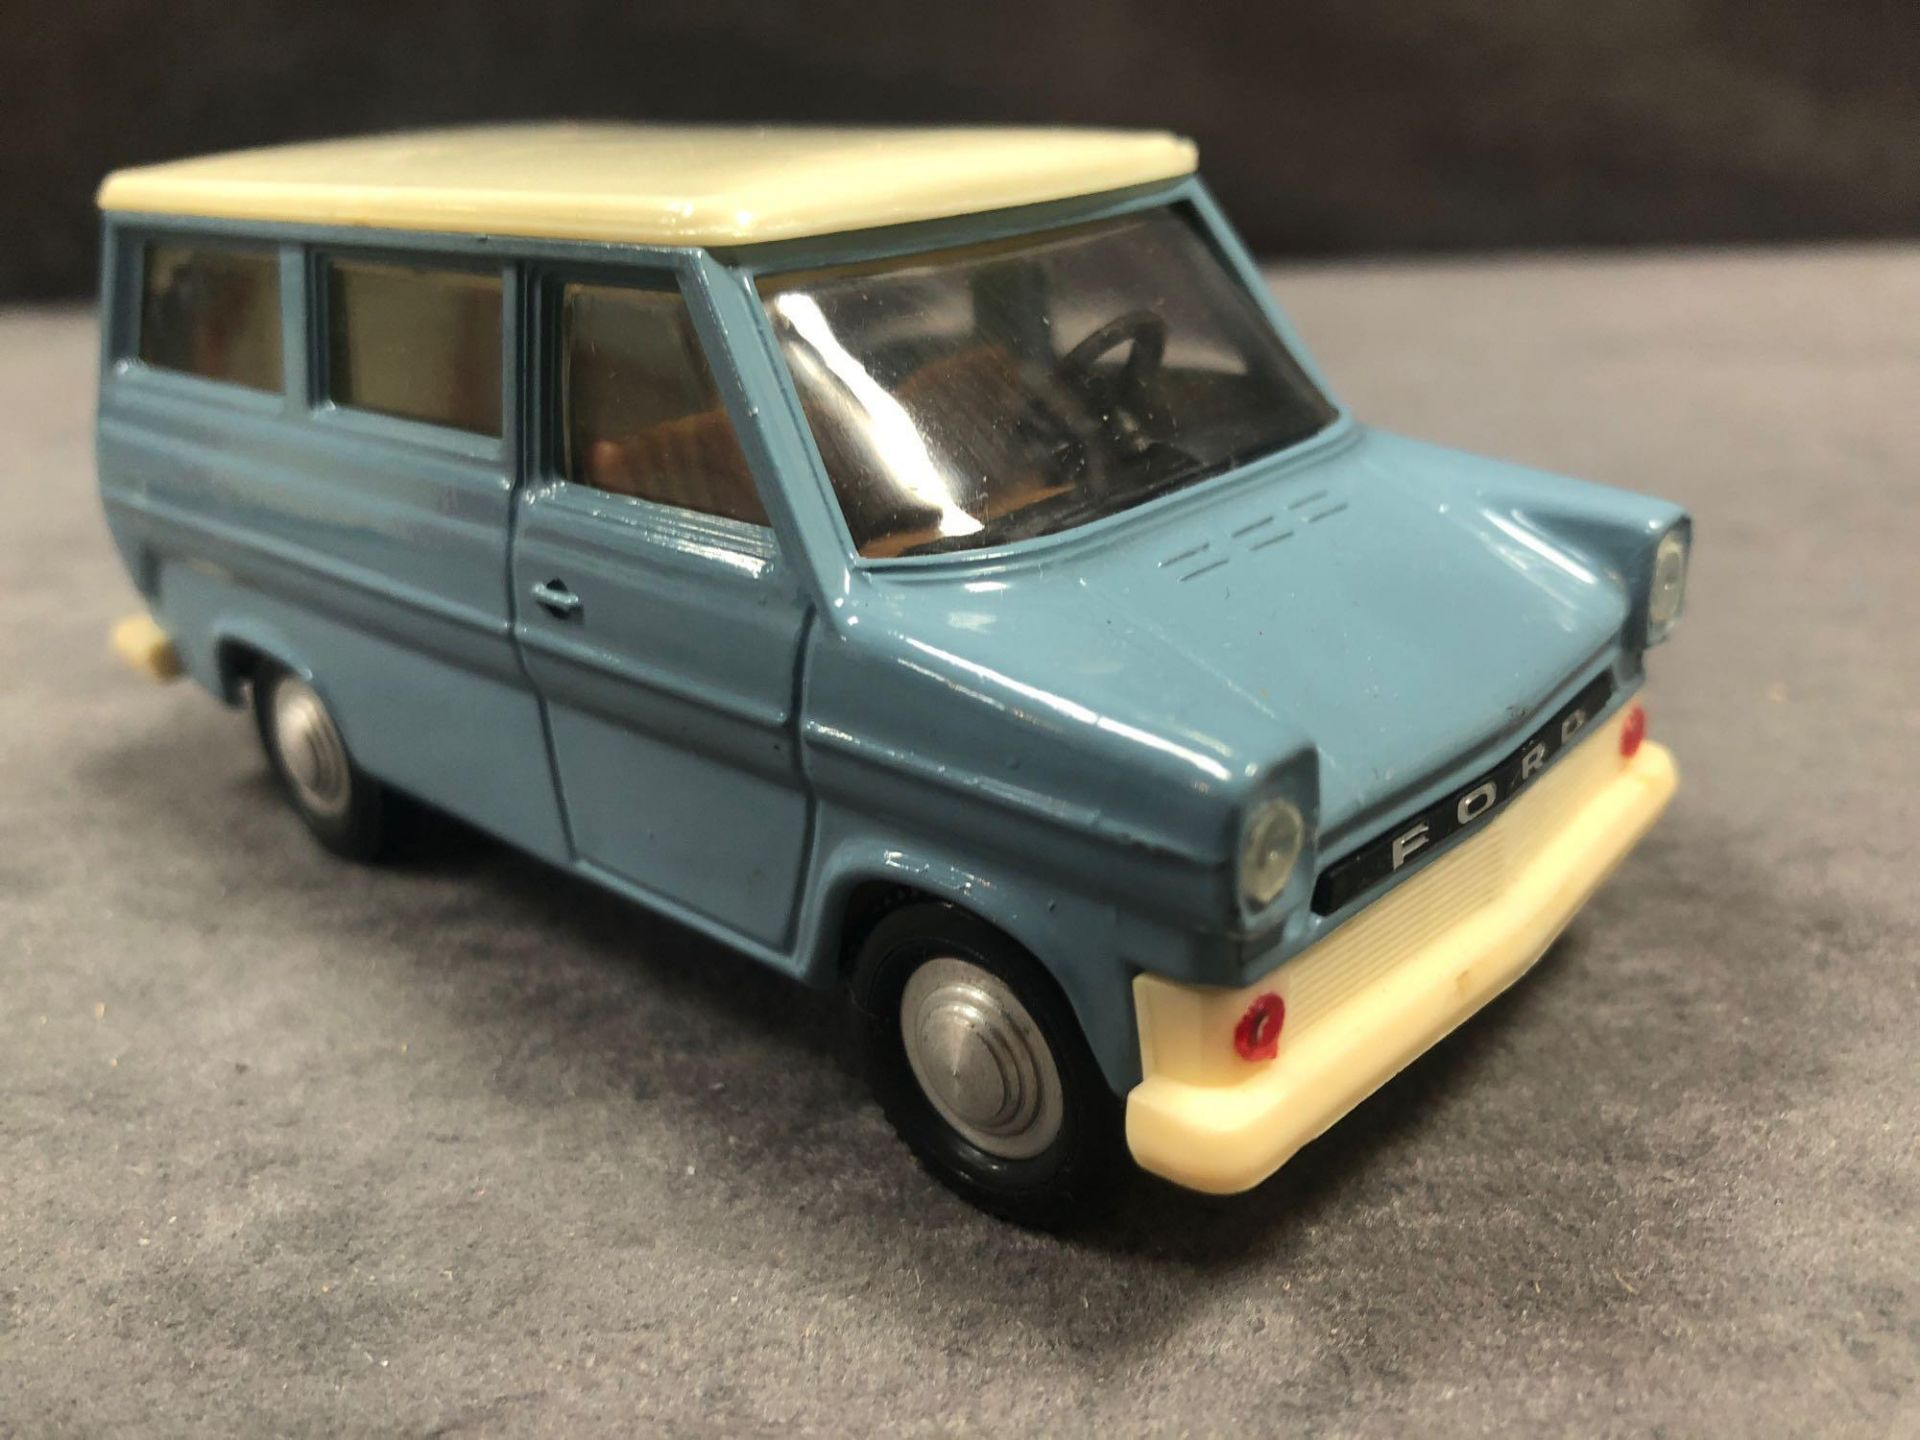 R.W.-Modell (Germany) #400 Ford Transit Kombi In Box - Image 2 of 3